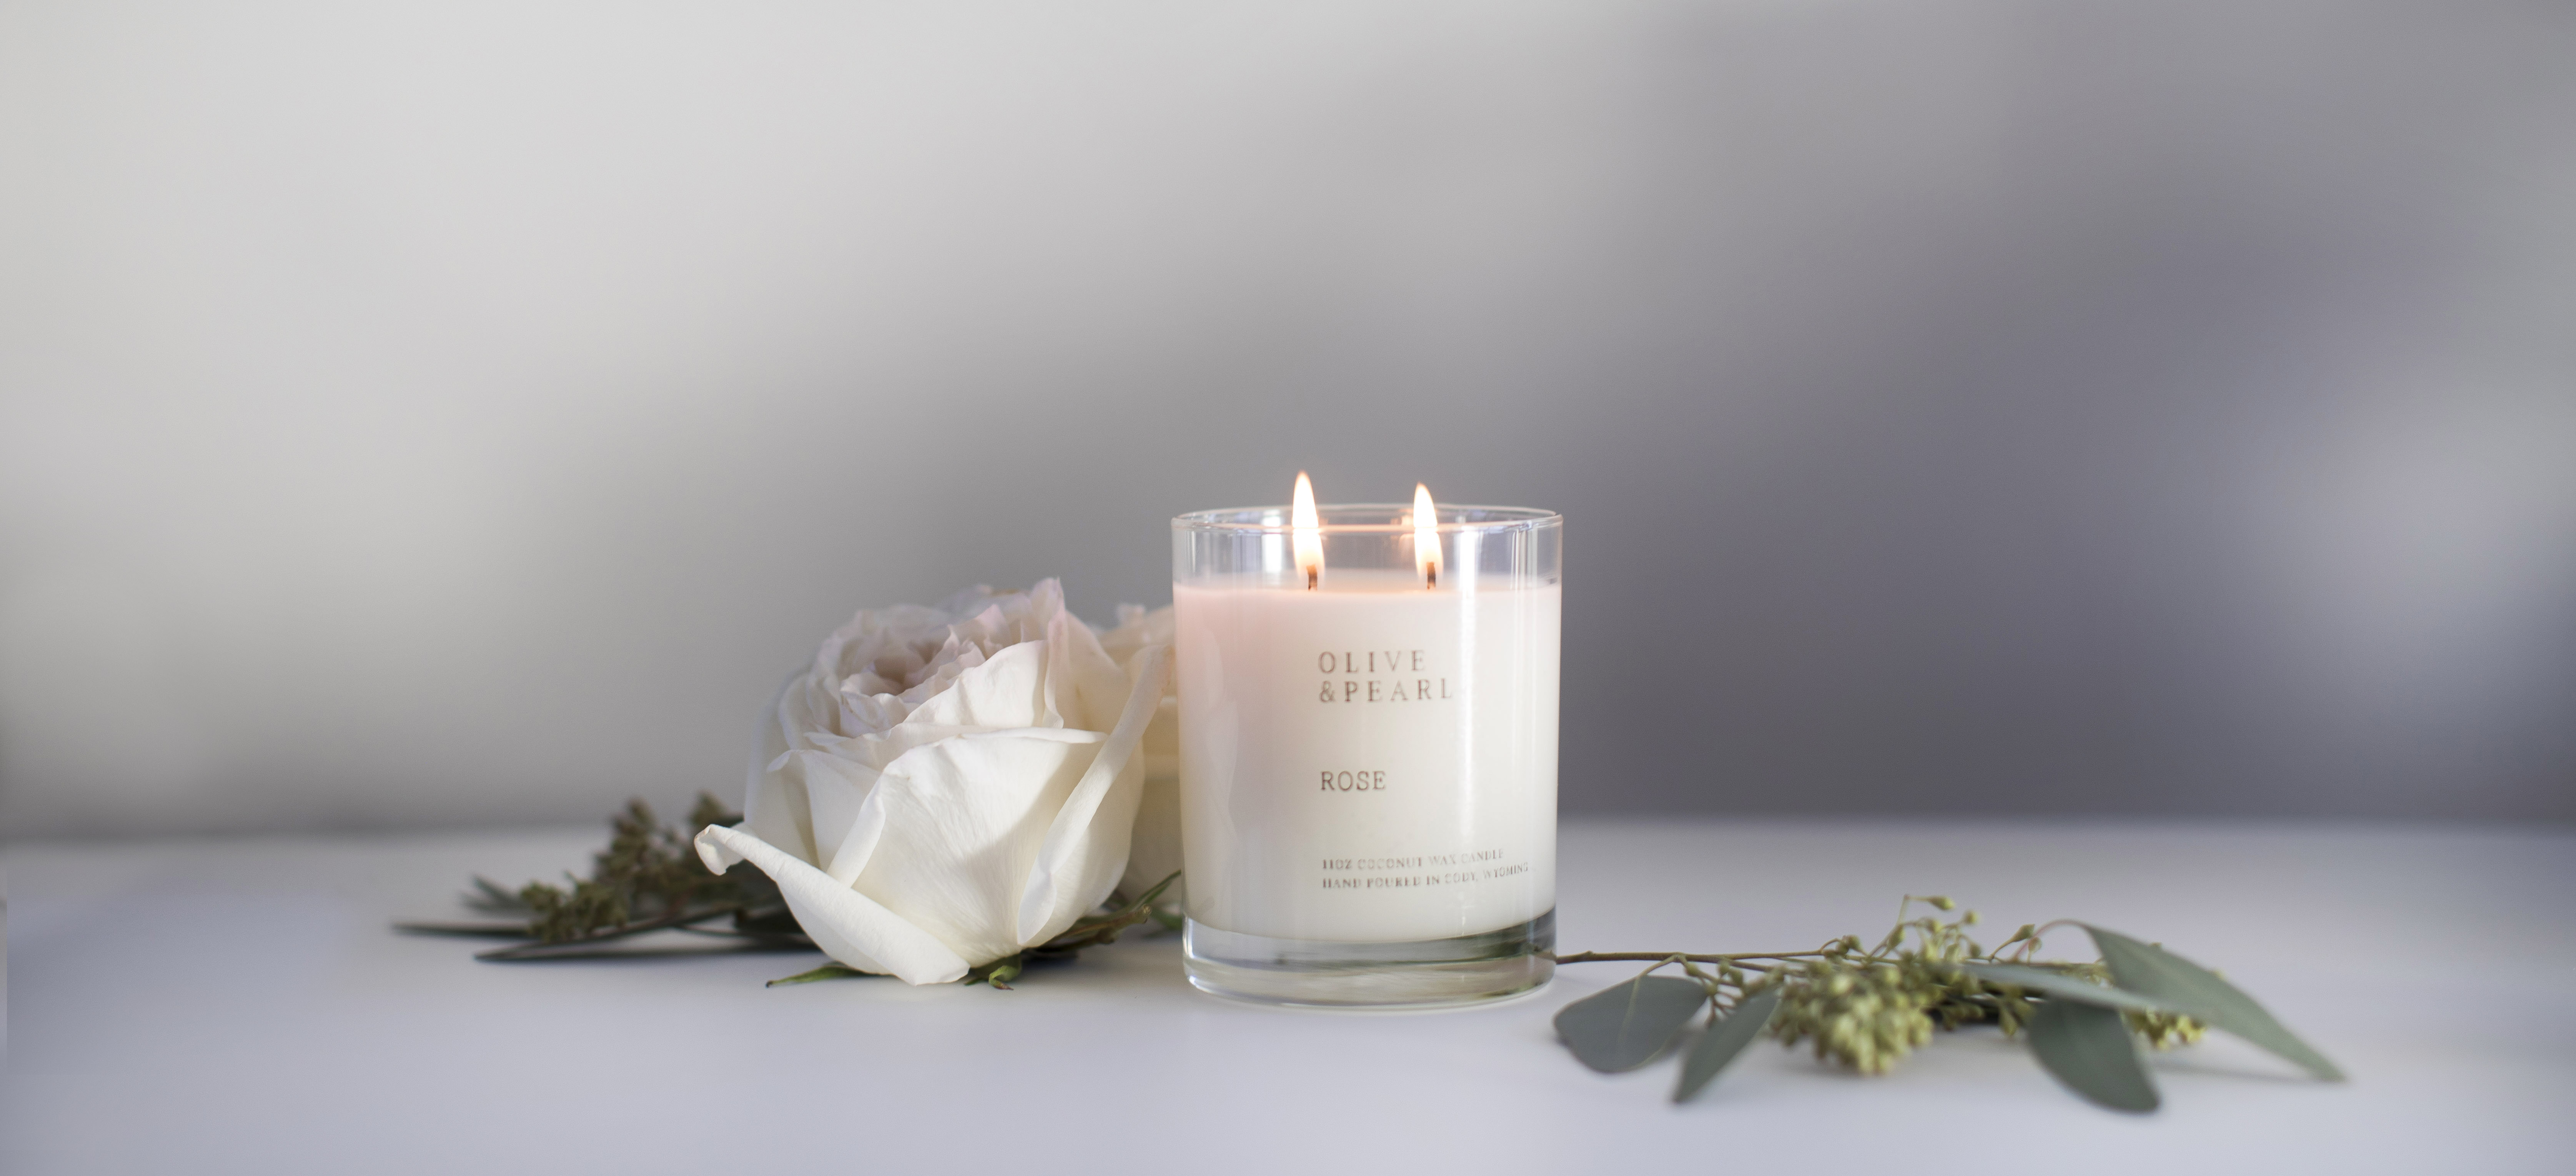 Behind the Scenes: Olive & Pearl Candles Spring Photoshoot